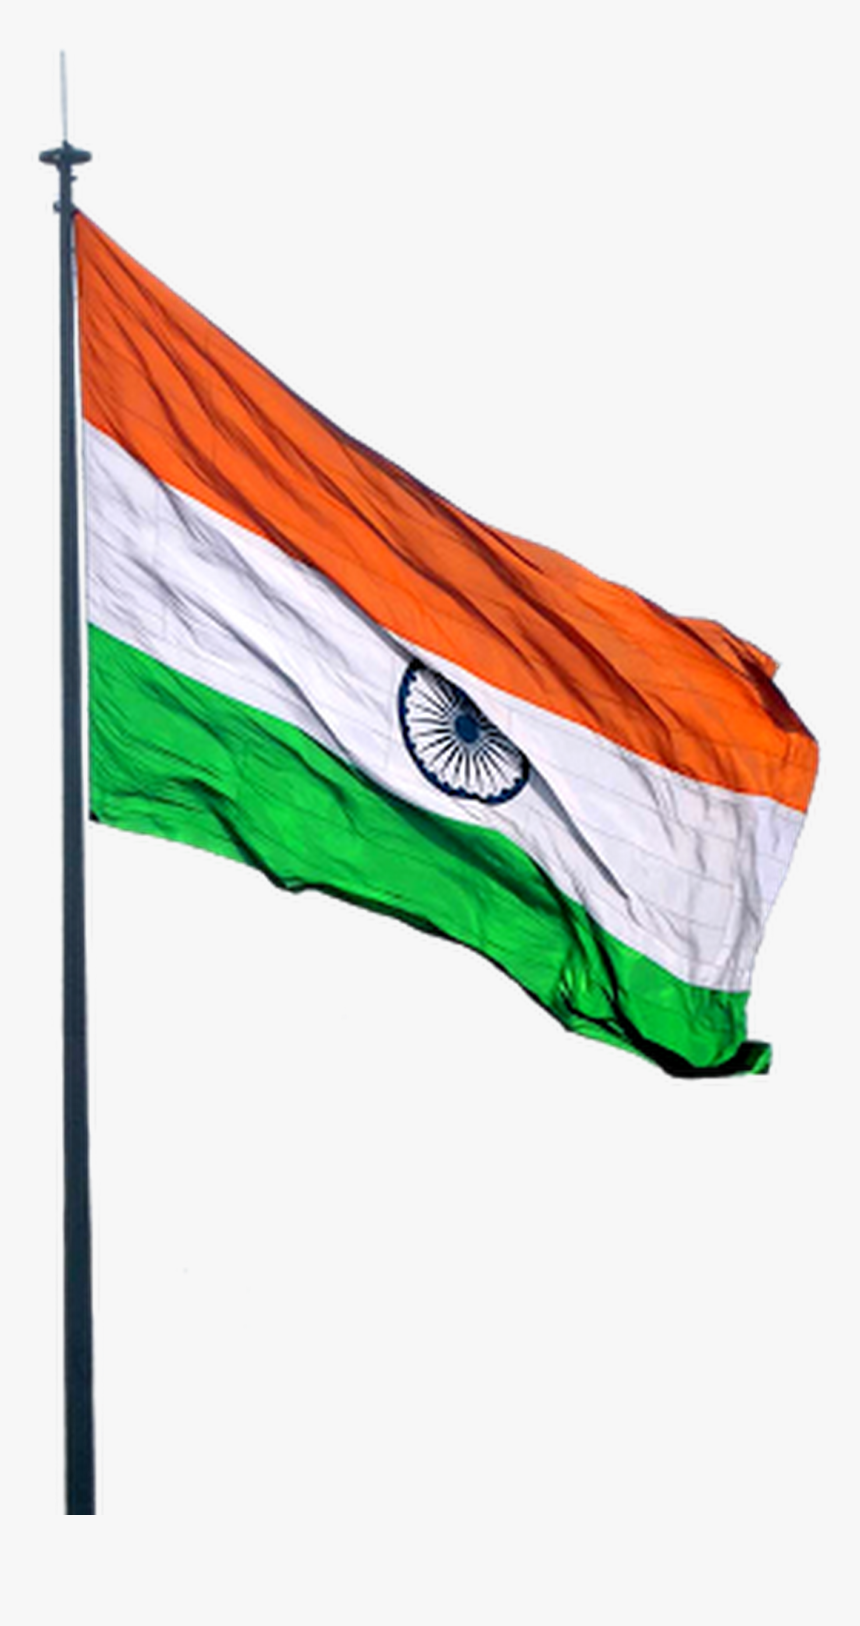 15 august png background full hd hindu flag png -foto background images hd, hd background